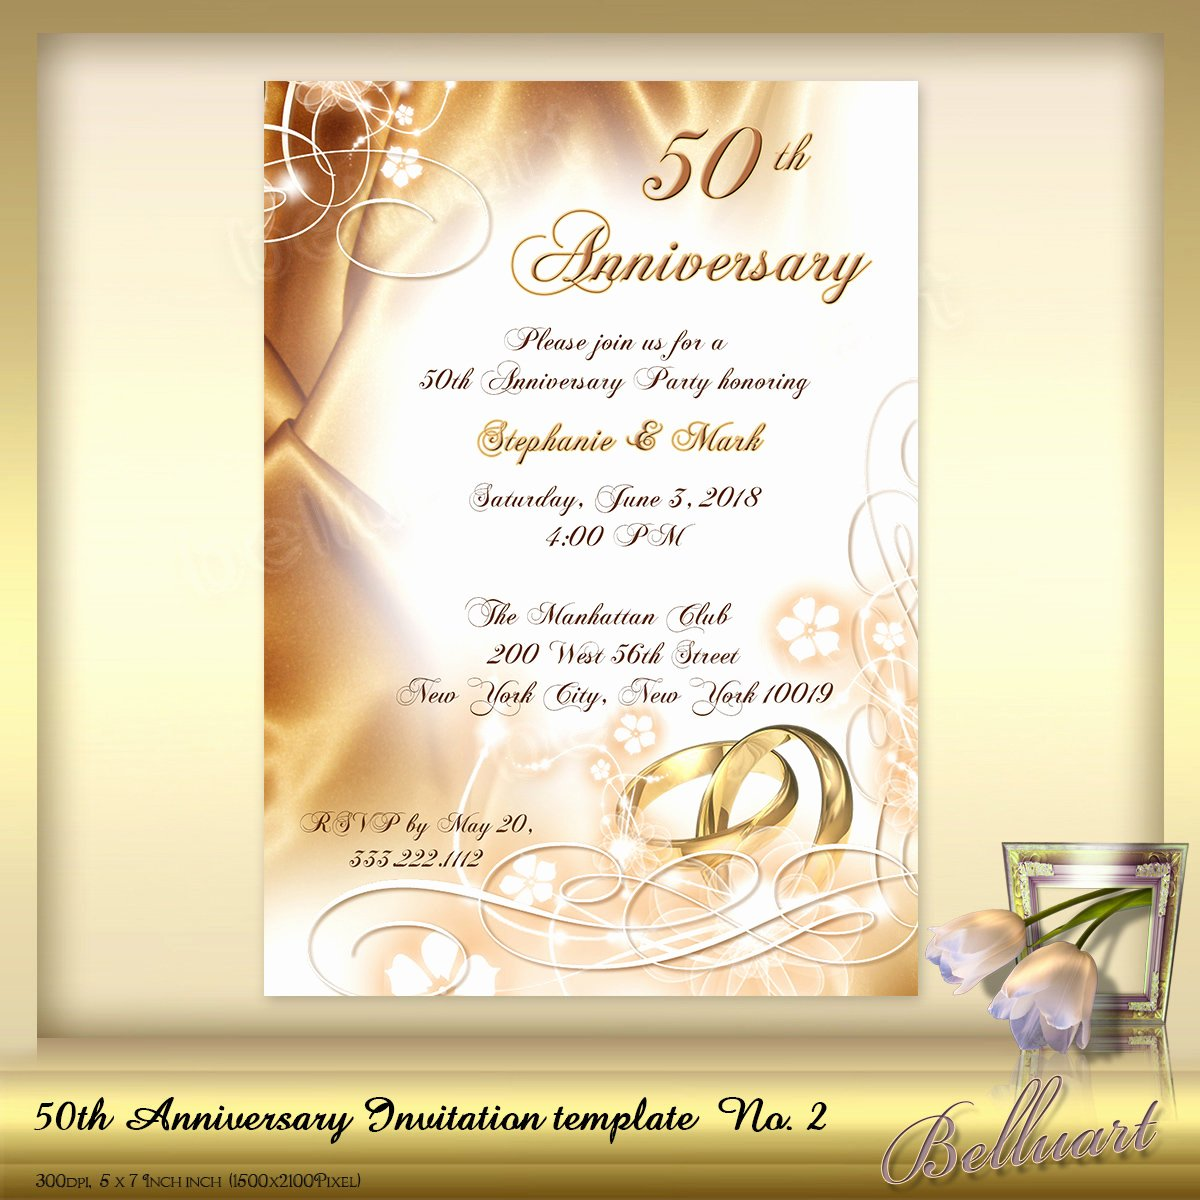 50th Anniversary Invitations Templates Elegant 50th Anniversary Invitation Template No 2 Golden Wedding